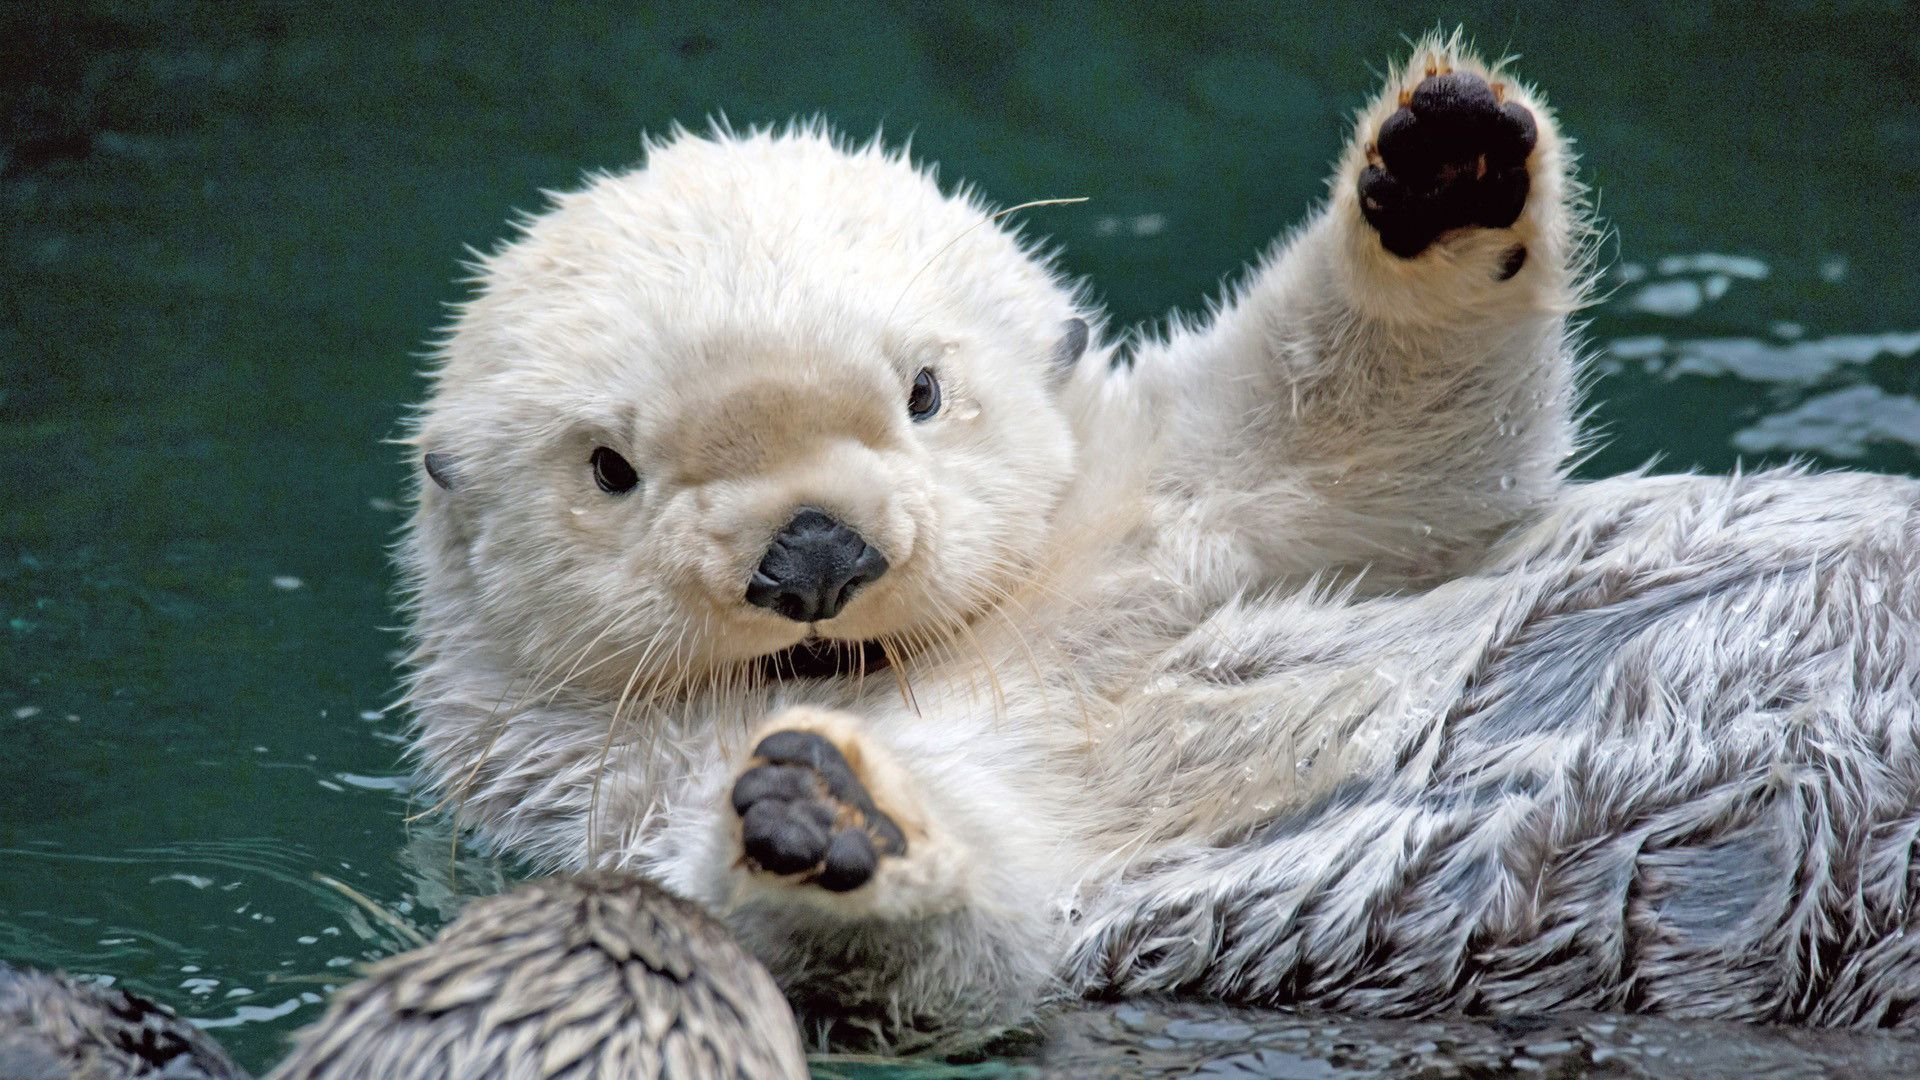 Sea Otter Wallpapers Wallpaper Cave Cute Animals Baby